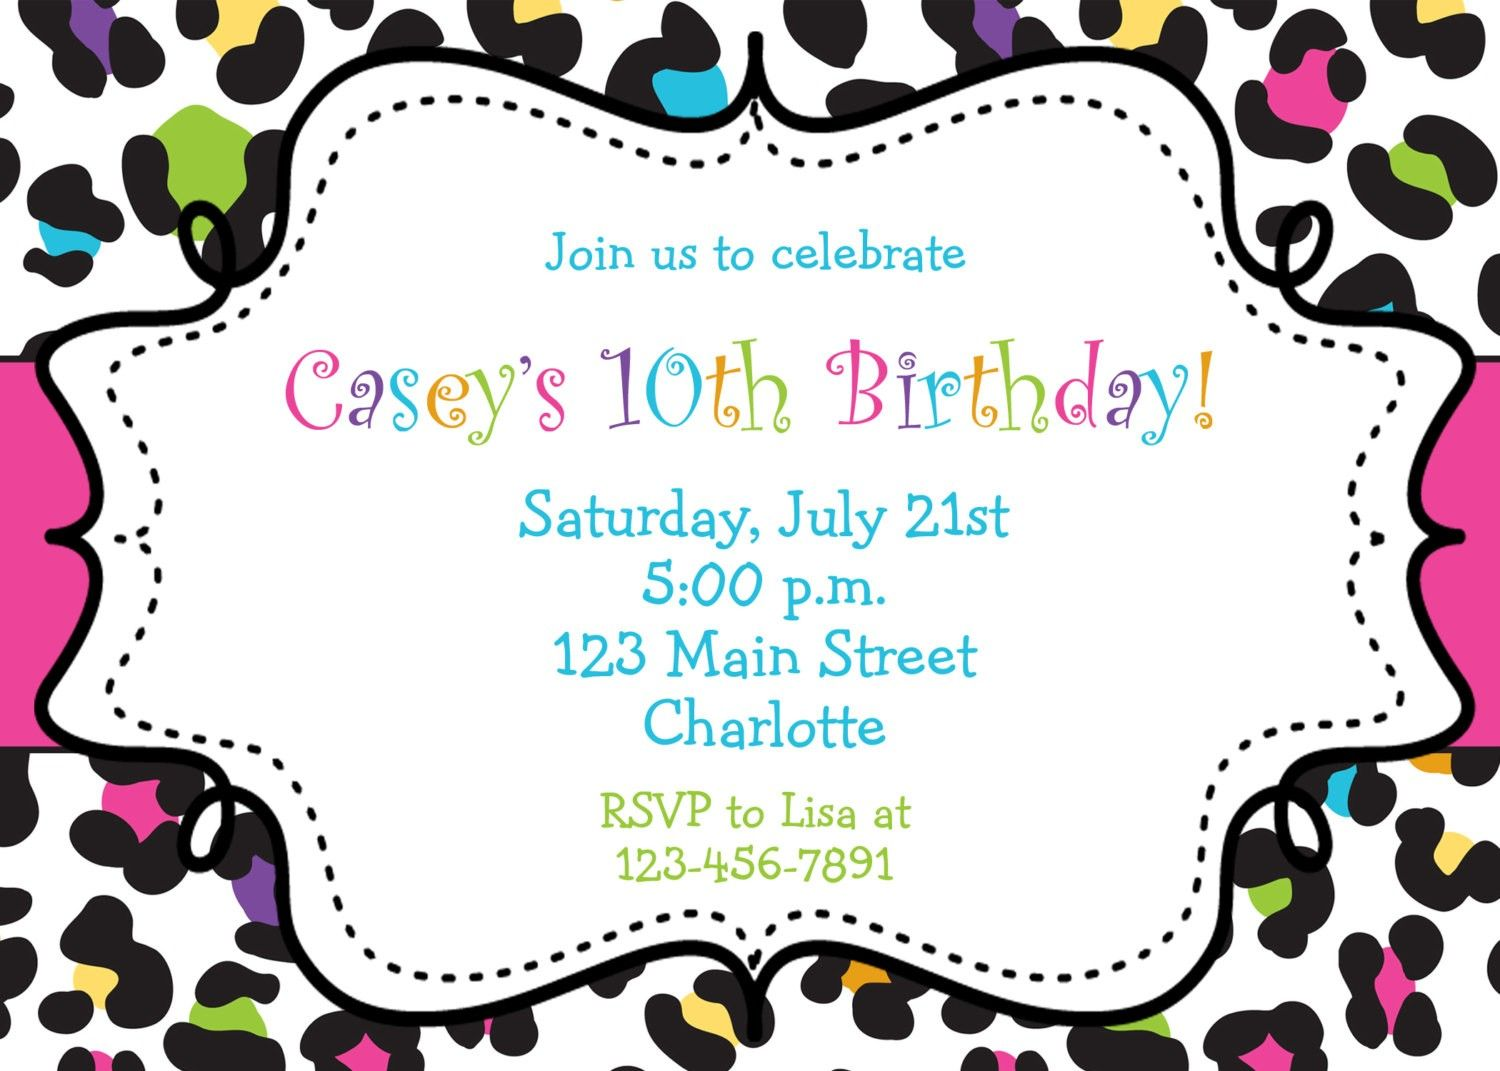 Free Printable Birthday Party Invitations For Tween Girls Maria - Free templates for birthday invitations